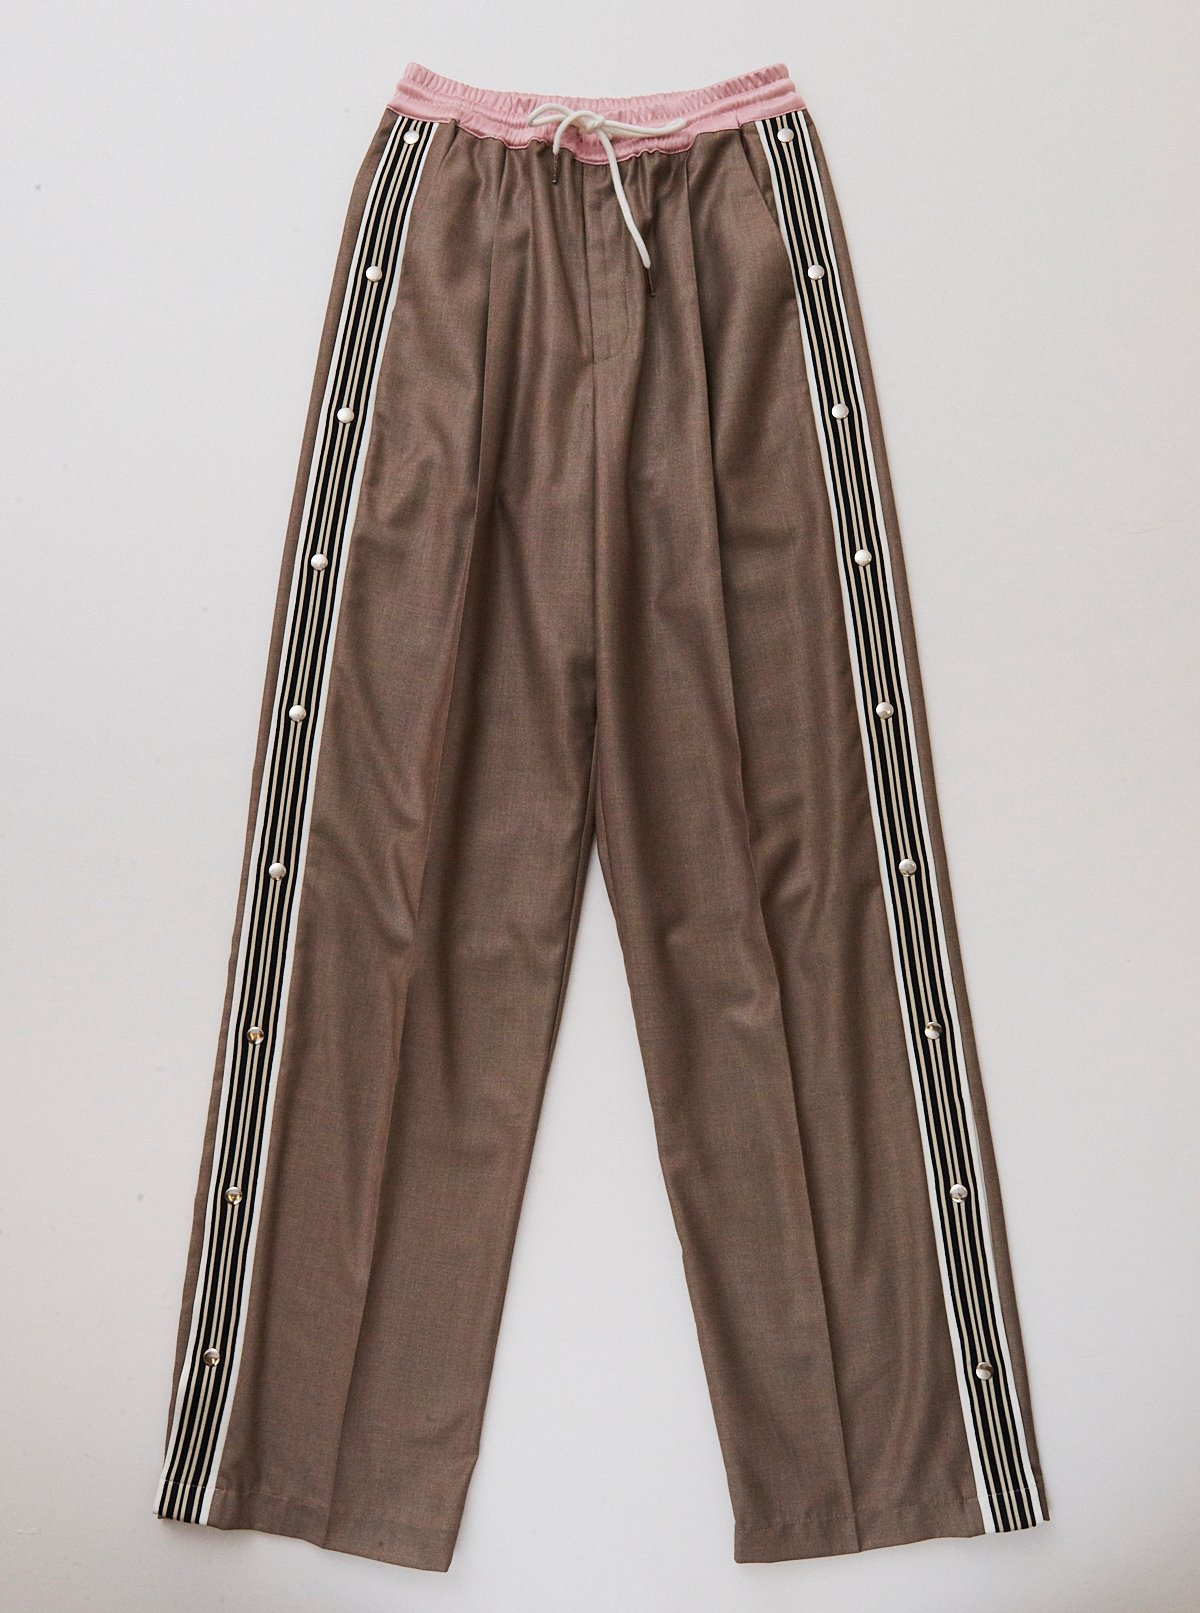 Tailor Track Pants